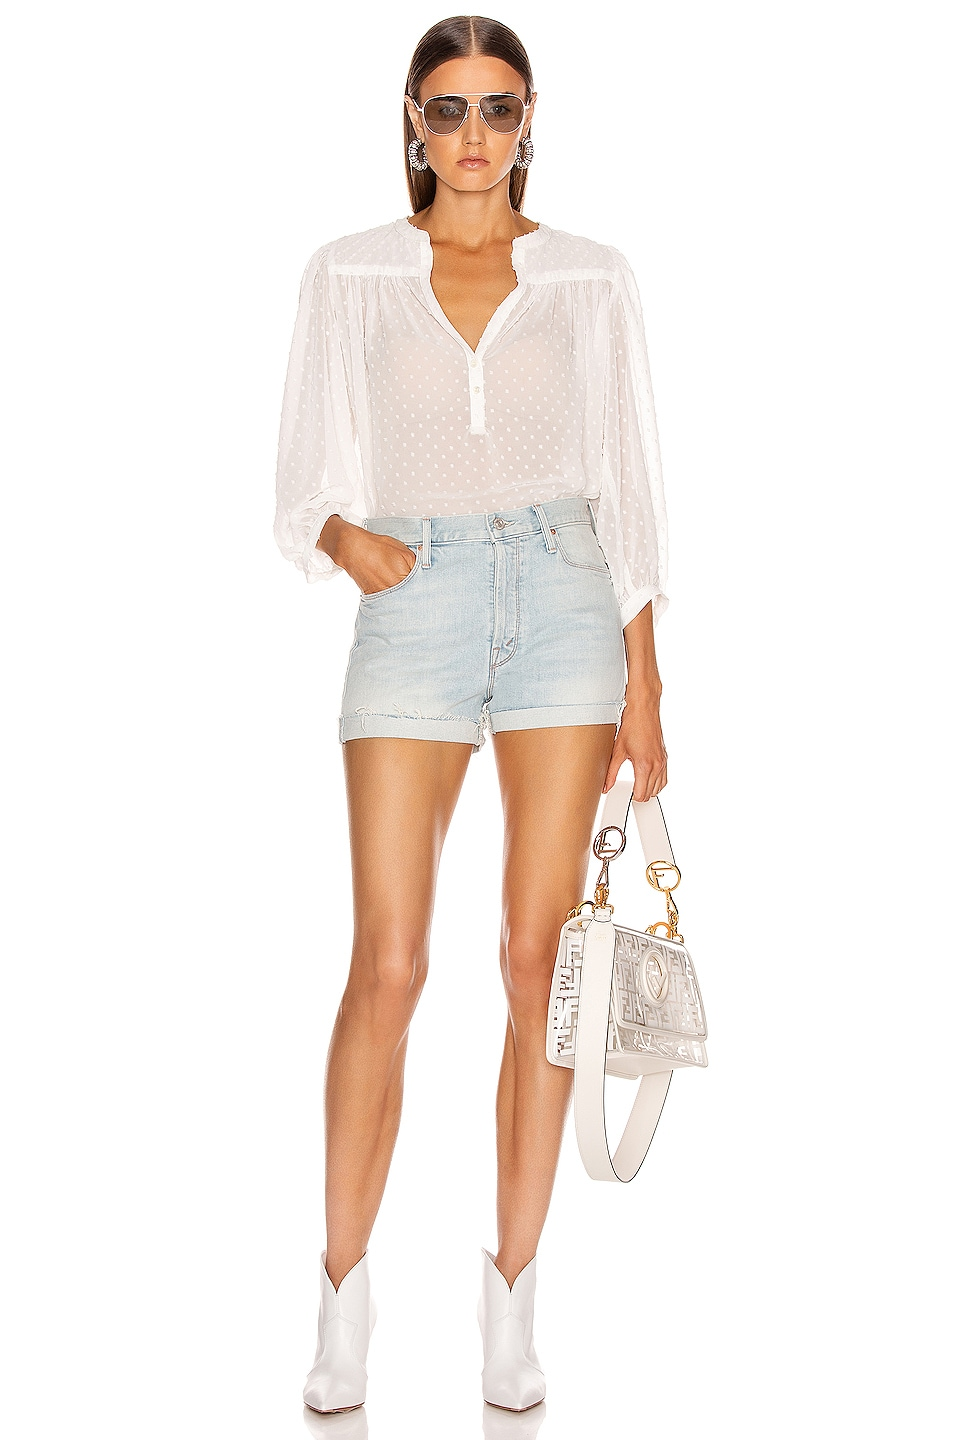 Image 4 of ICONS Objects of Devotion The Modern Poet Top in White